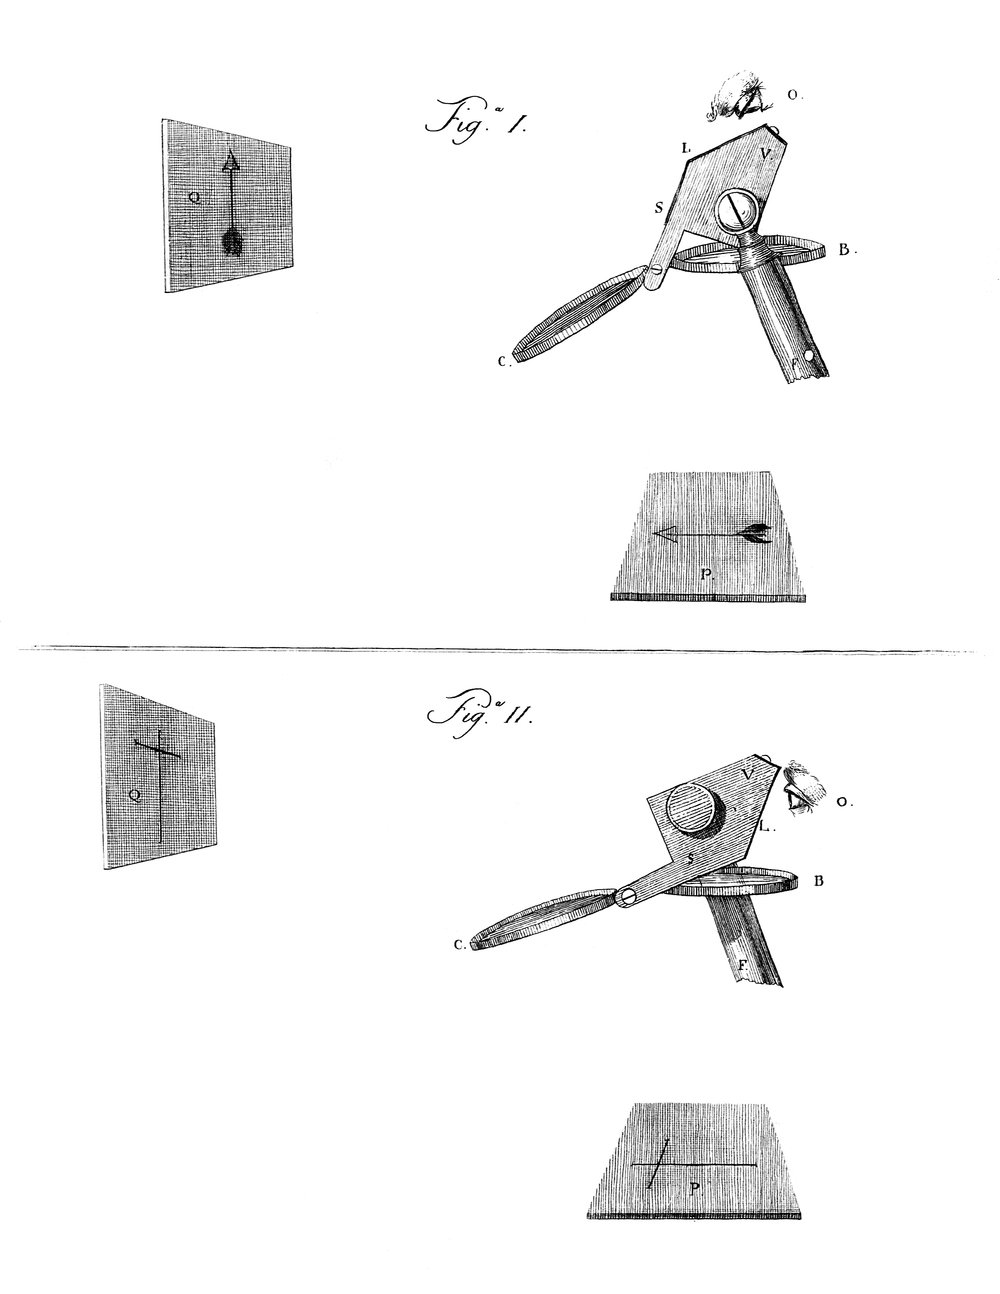 1819_GiovanniBattistaAmici_Camera_Lucida_Variant_Instructions USLetter.jpg